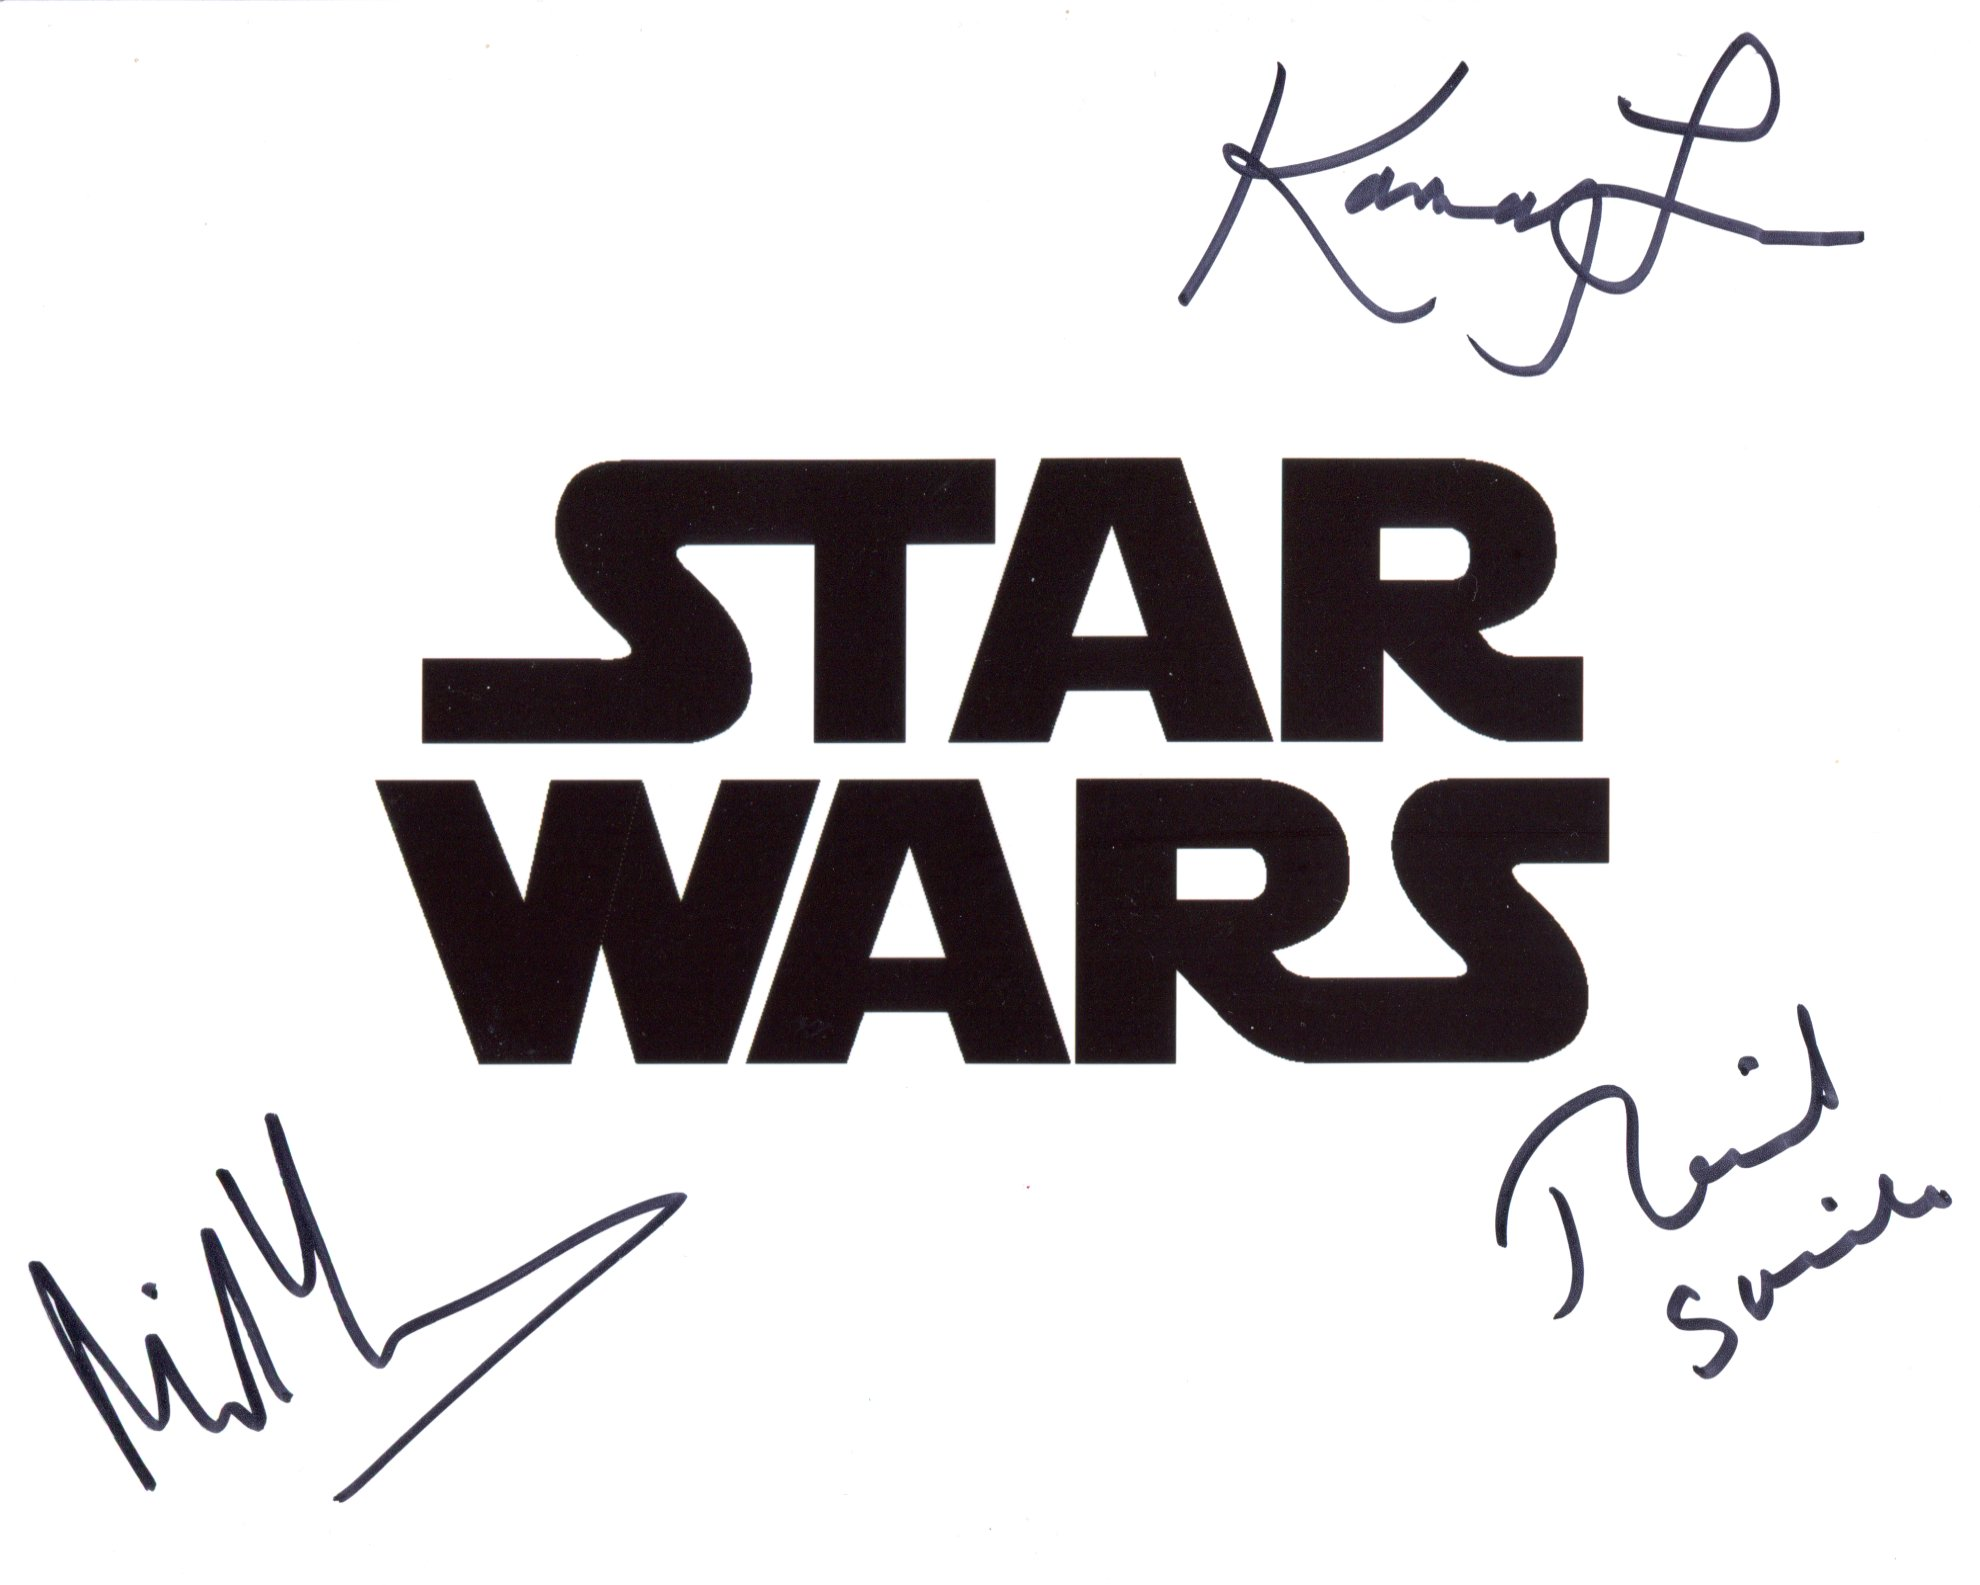 Star Wars multi-signed 8x10 movie photo signed by THREE actors from the films in Miltos Yerolemou,